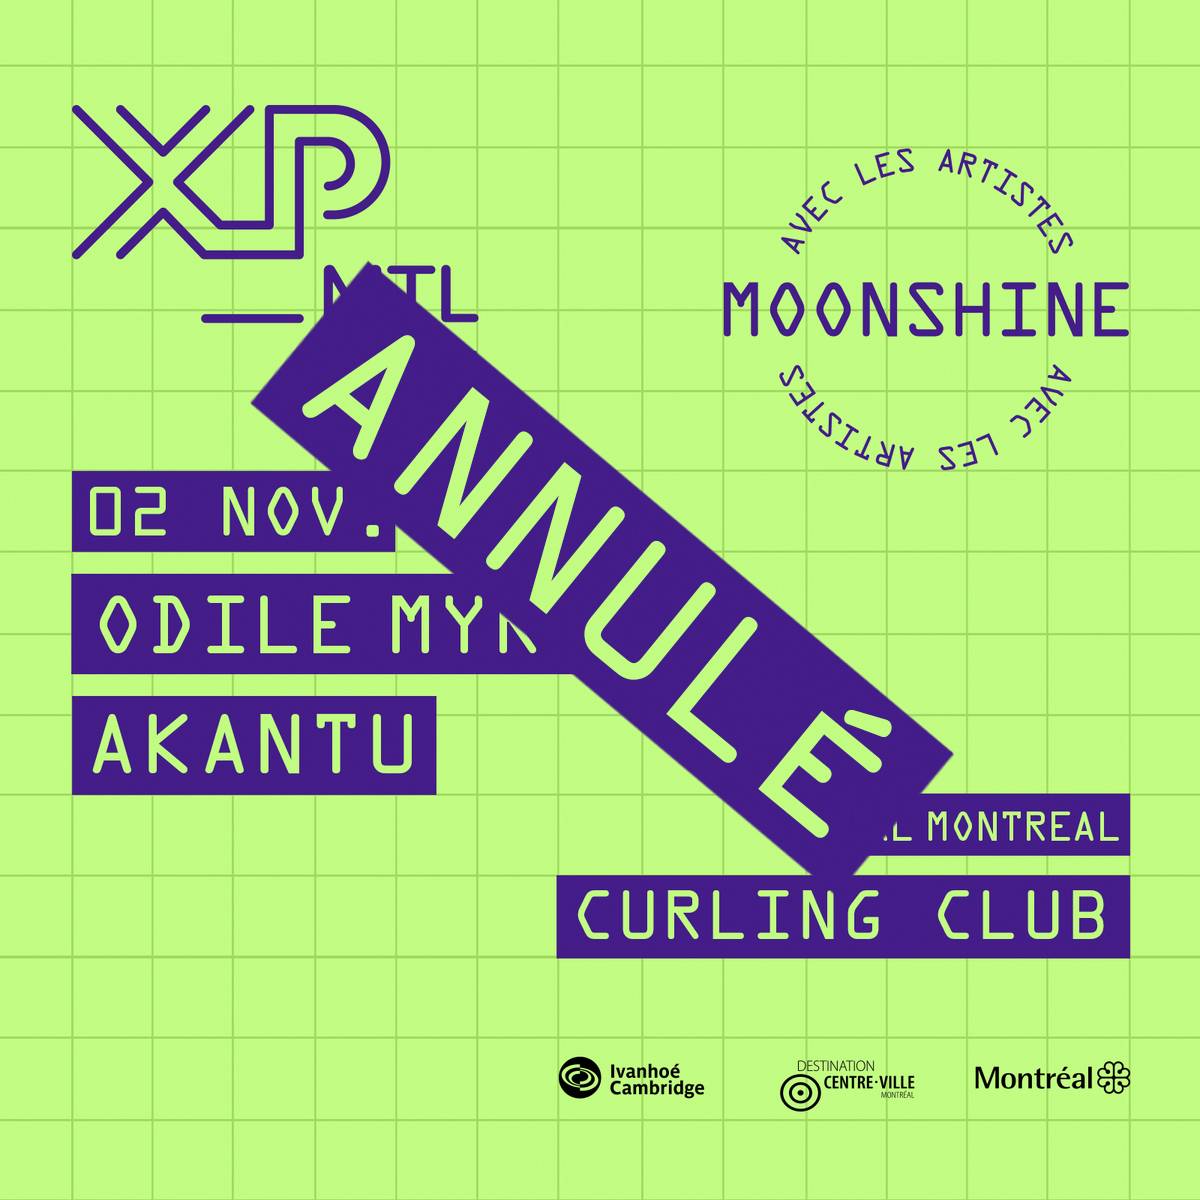 (CANCELLED) XP_MTL presents Moonshine's Artists